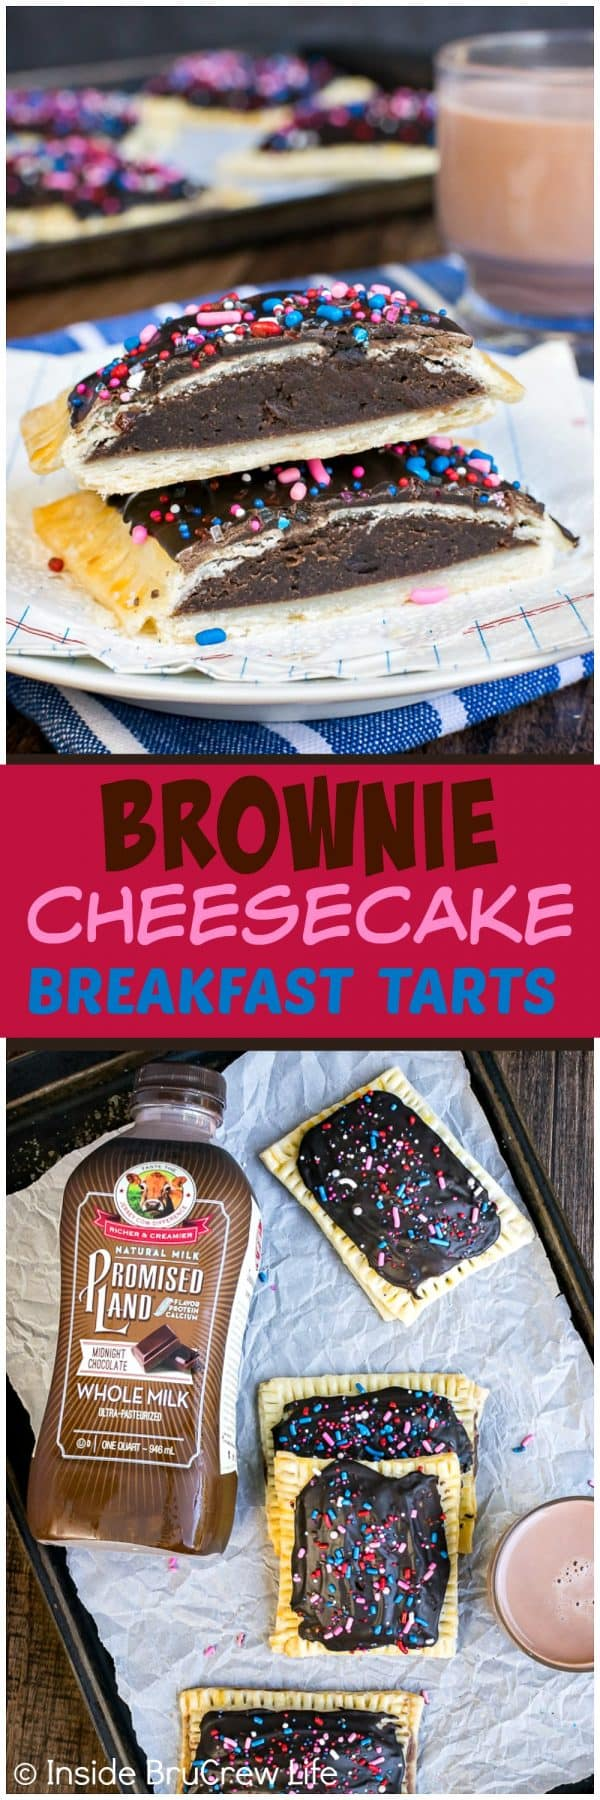 Brownie Cheesecake Breakfast Tarts - chocolate frosting and a soft brownie center makes these tarts a fun way to start the day. Easy breakfast recipe for busy mornings!